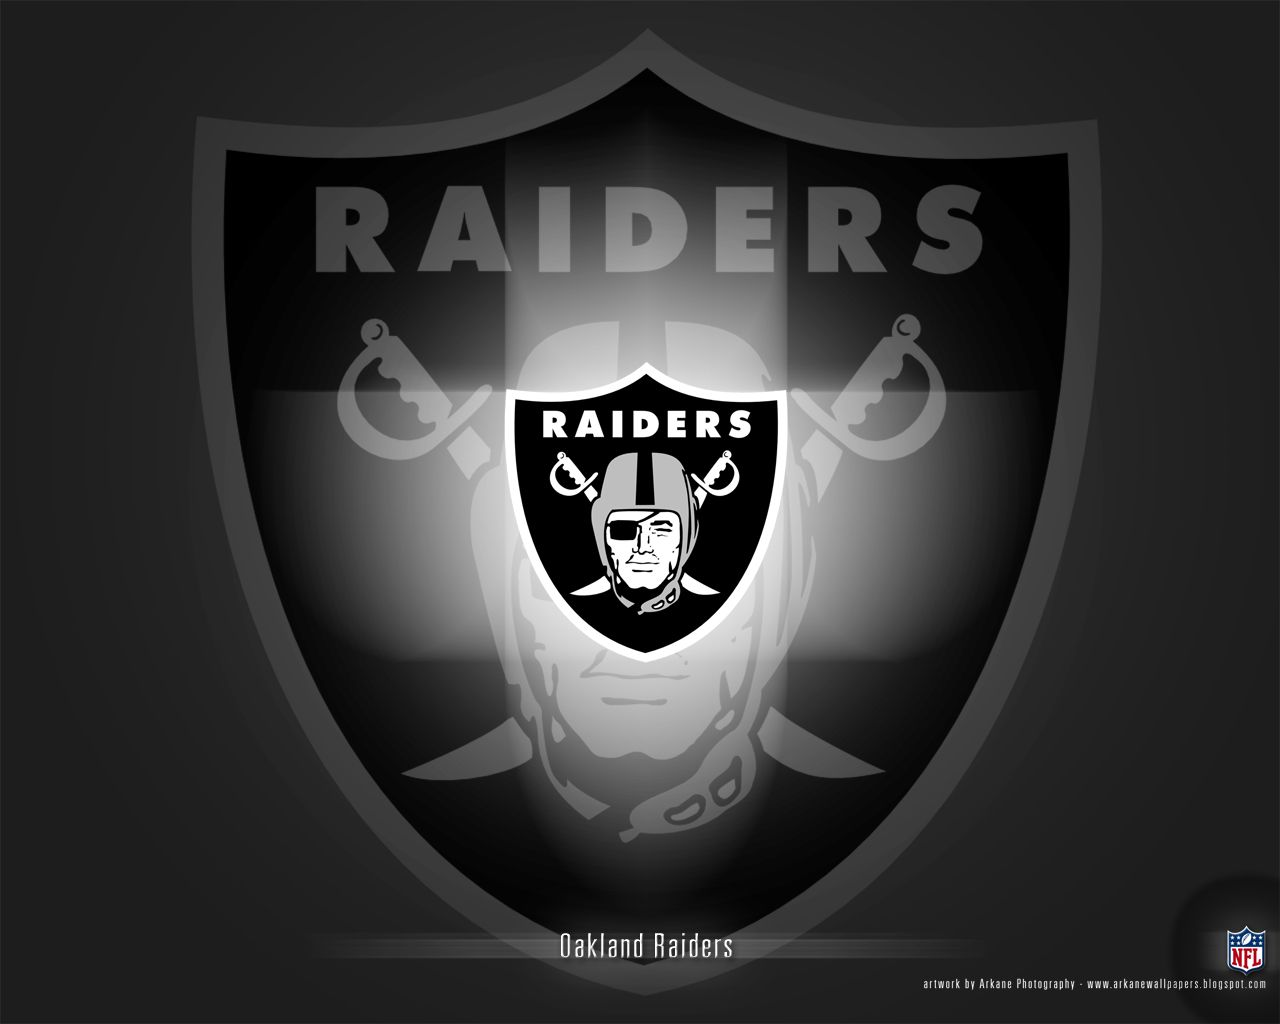 raiders photos Arkane NFL Wallpapers Raiders